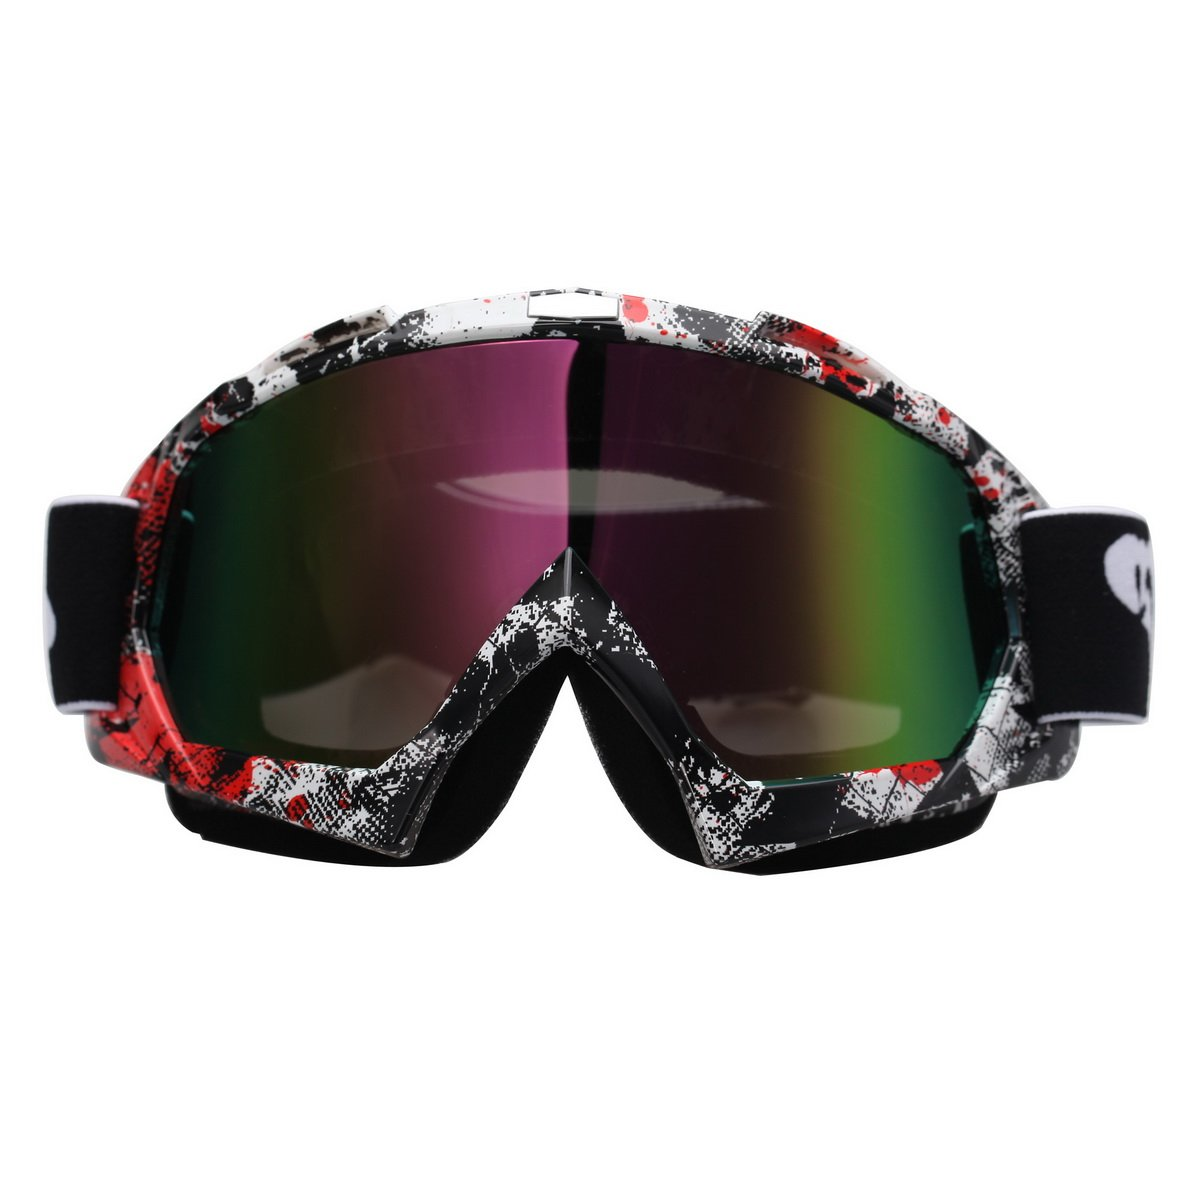 Possbay Motorcycle Goggels, Motocross Glasses Sports Protective Eyewear for ATV Dirt Bike Riding Cycling Skiing Snowboard